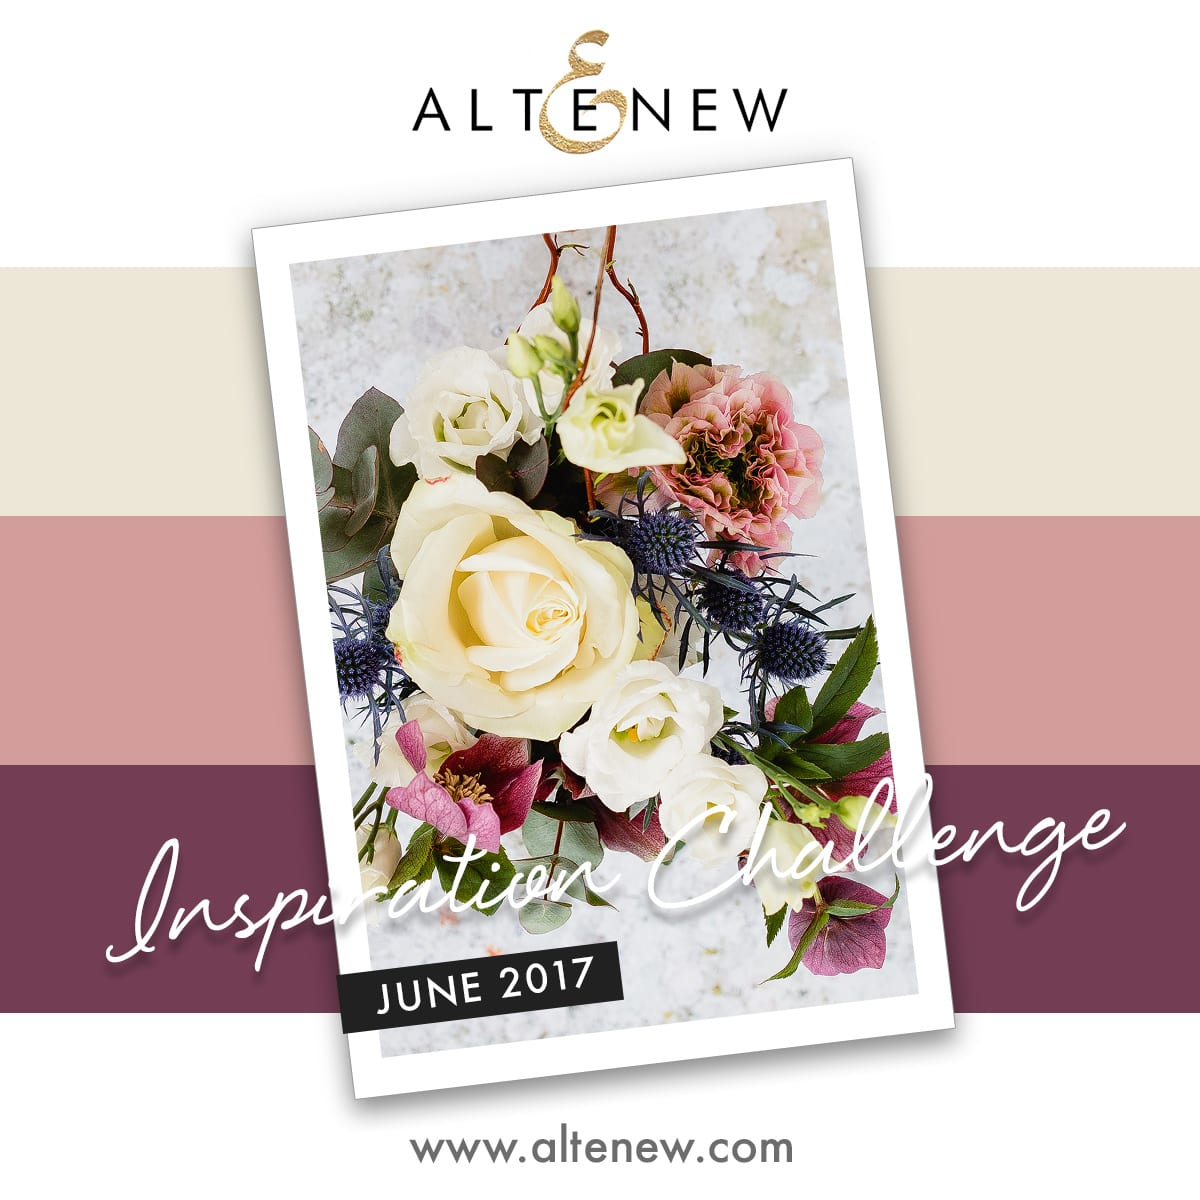 June 2017 Inspiration Challenge by Debby Hughes. Find out more by clicking on the following link: http://limedoodledesign.com/2017/06/altenew-june-inspiration-challenge-winner/